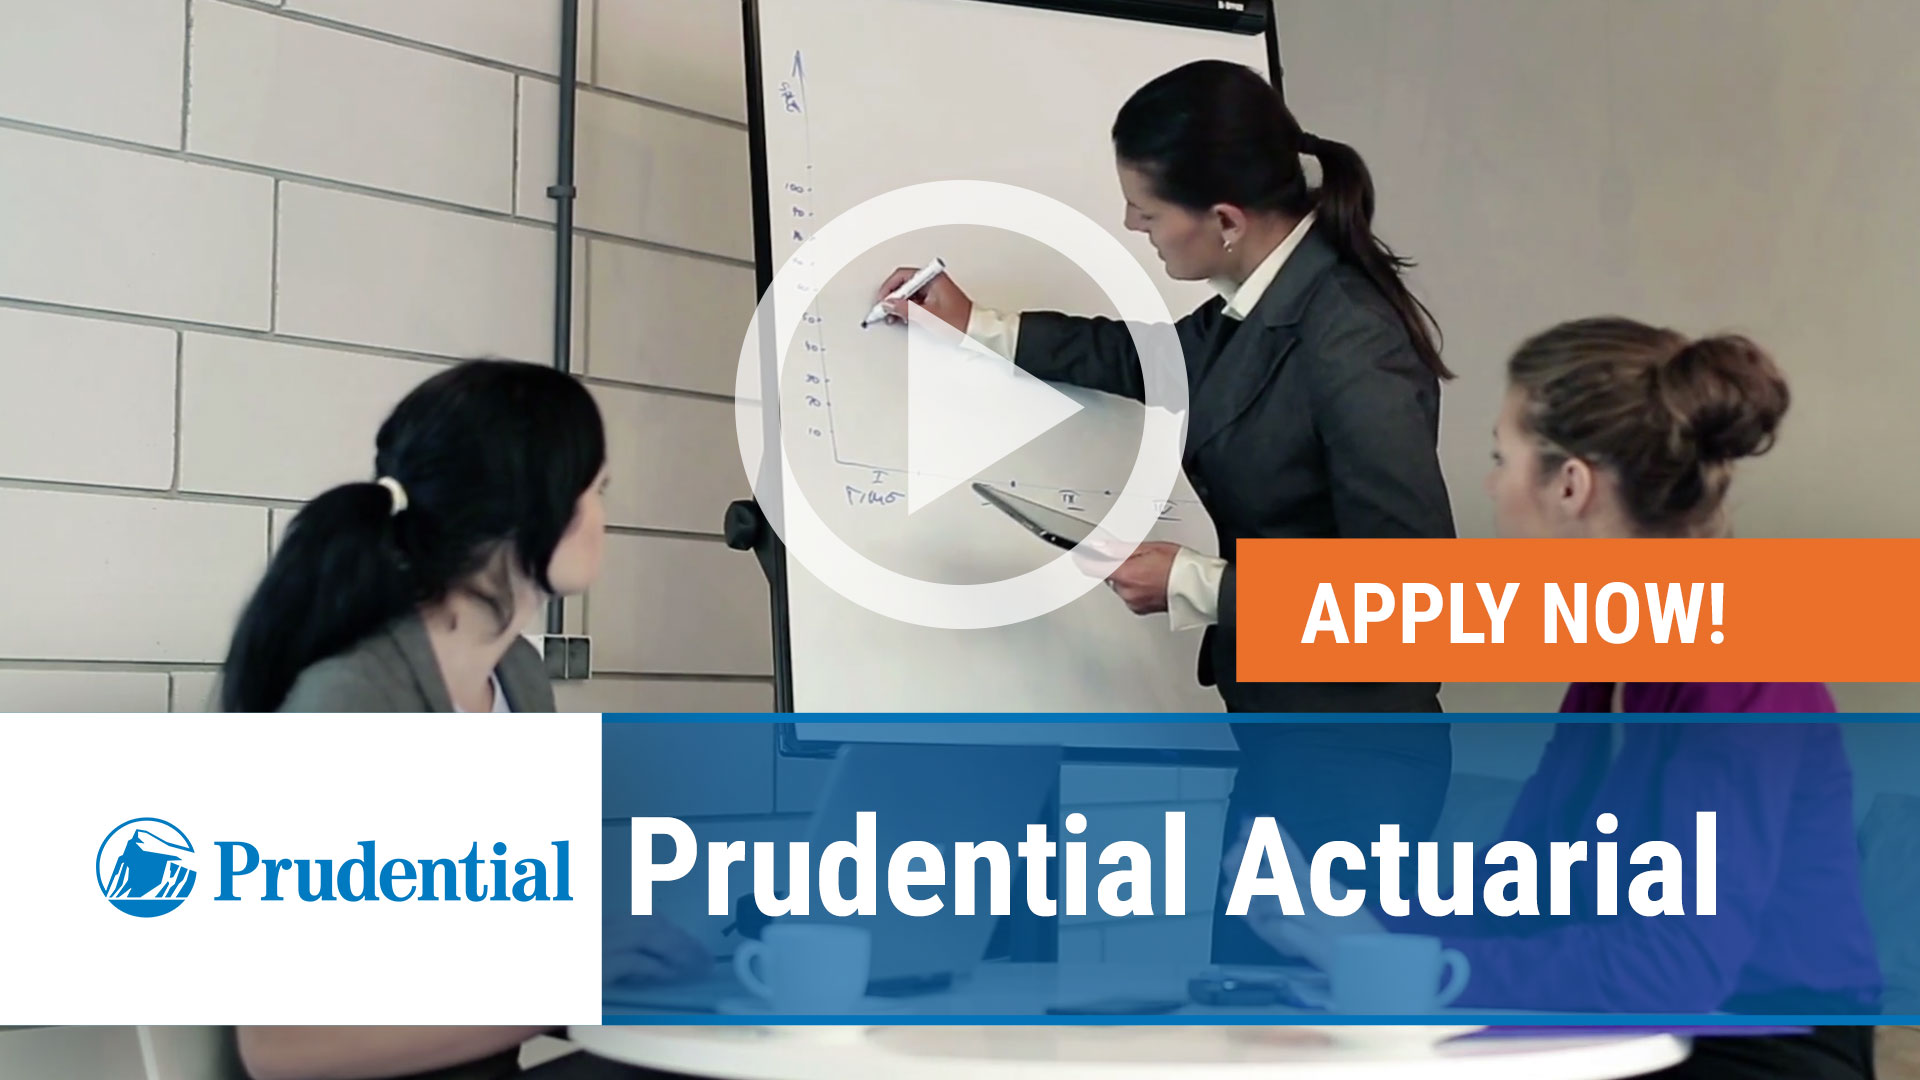 Watch our careers video for available job opening Prudential Actuarial in Newark NJ, Dresher PA, Hartfo